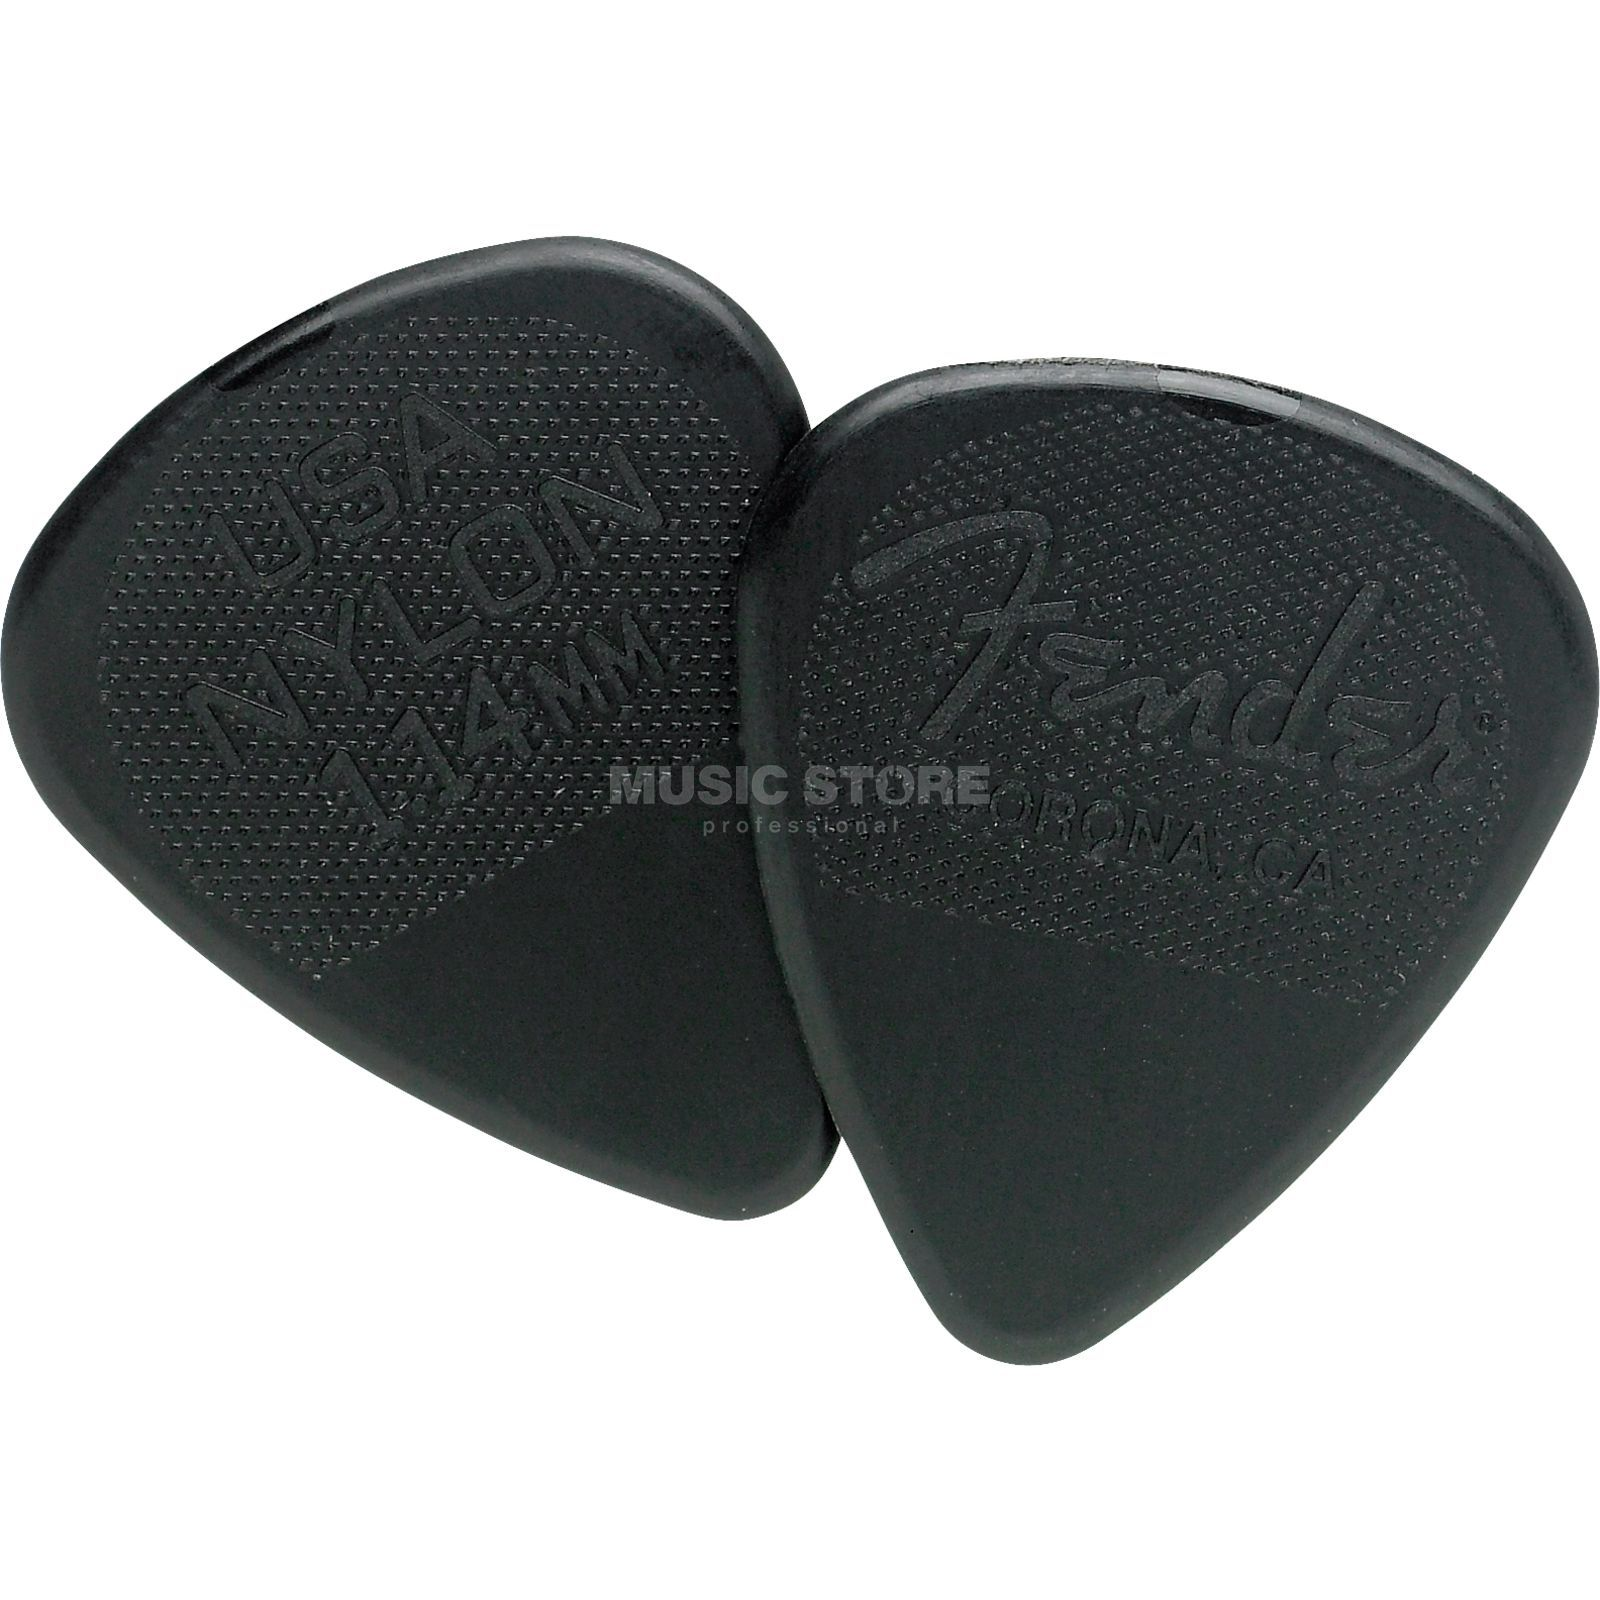 Fender Nylon Picks 12er Set 1,14 Produktbild